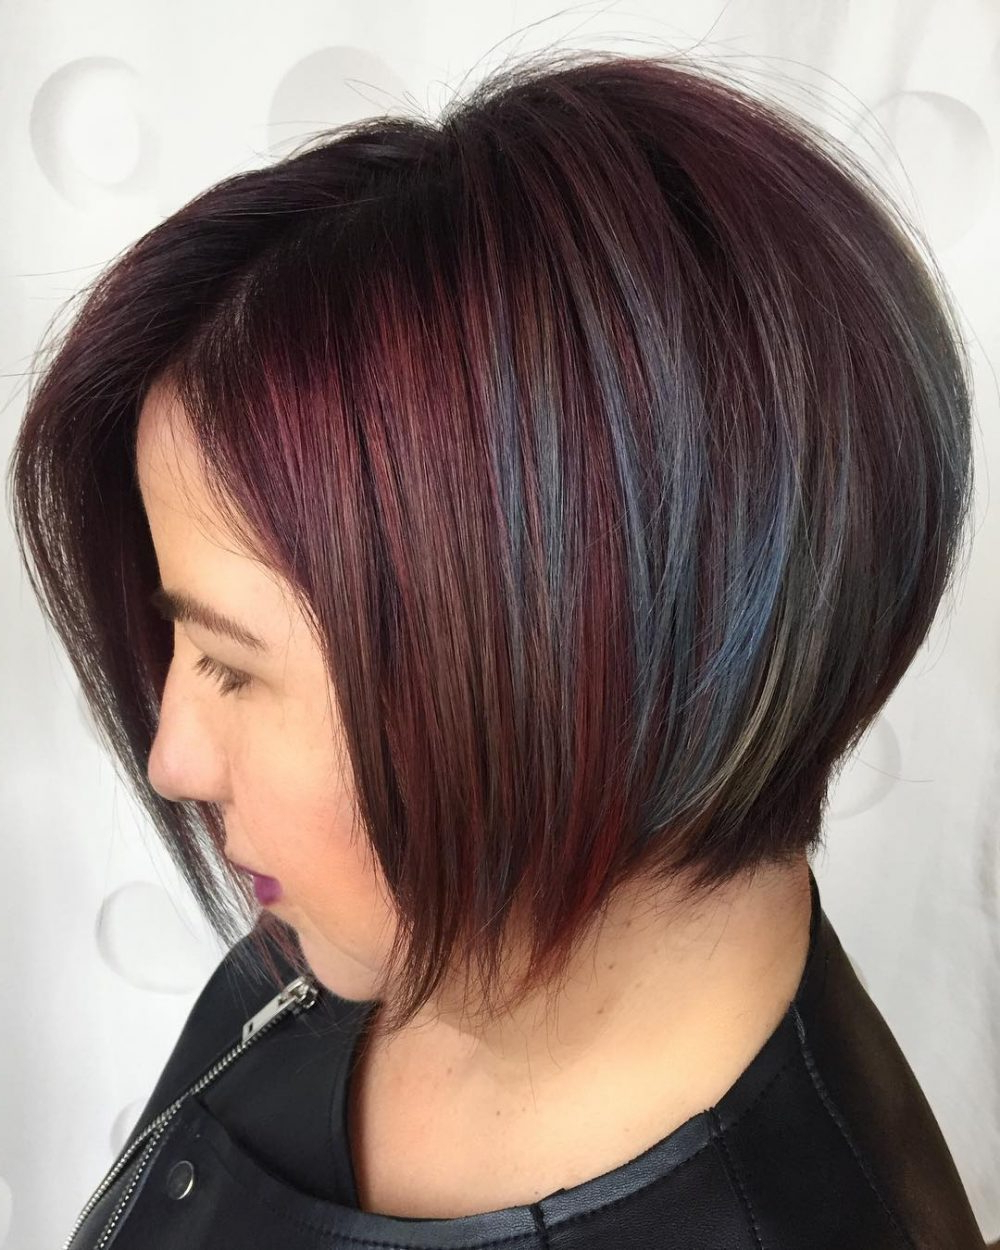 34 Greatest Short Haircuts And Hairstyles For Thick Hair For 2018 Within Edgy Short Bob Haircuts (View 7 of 25)